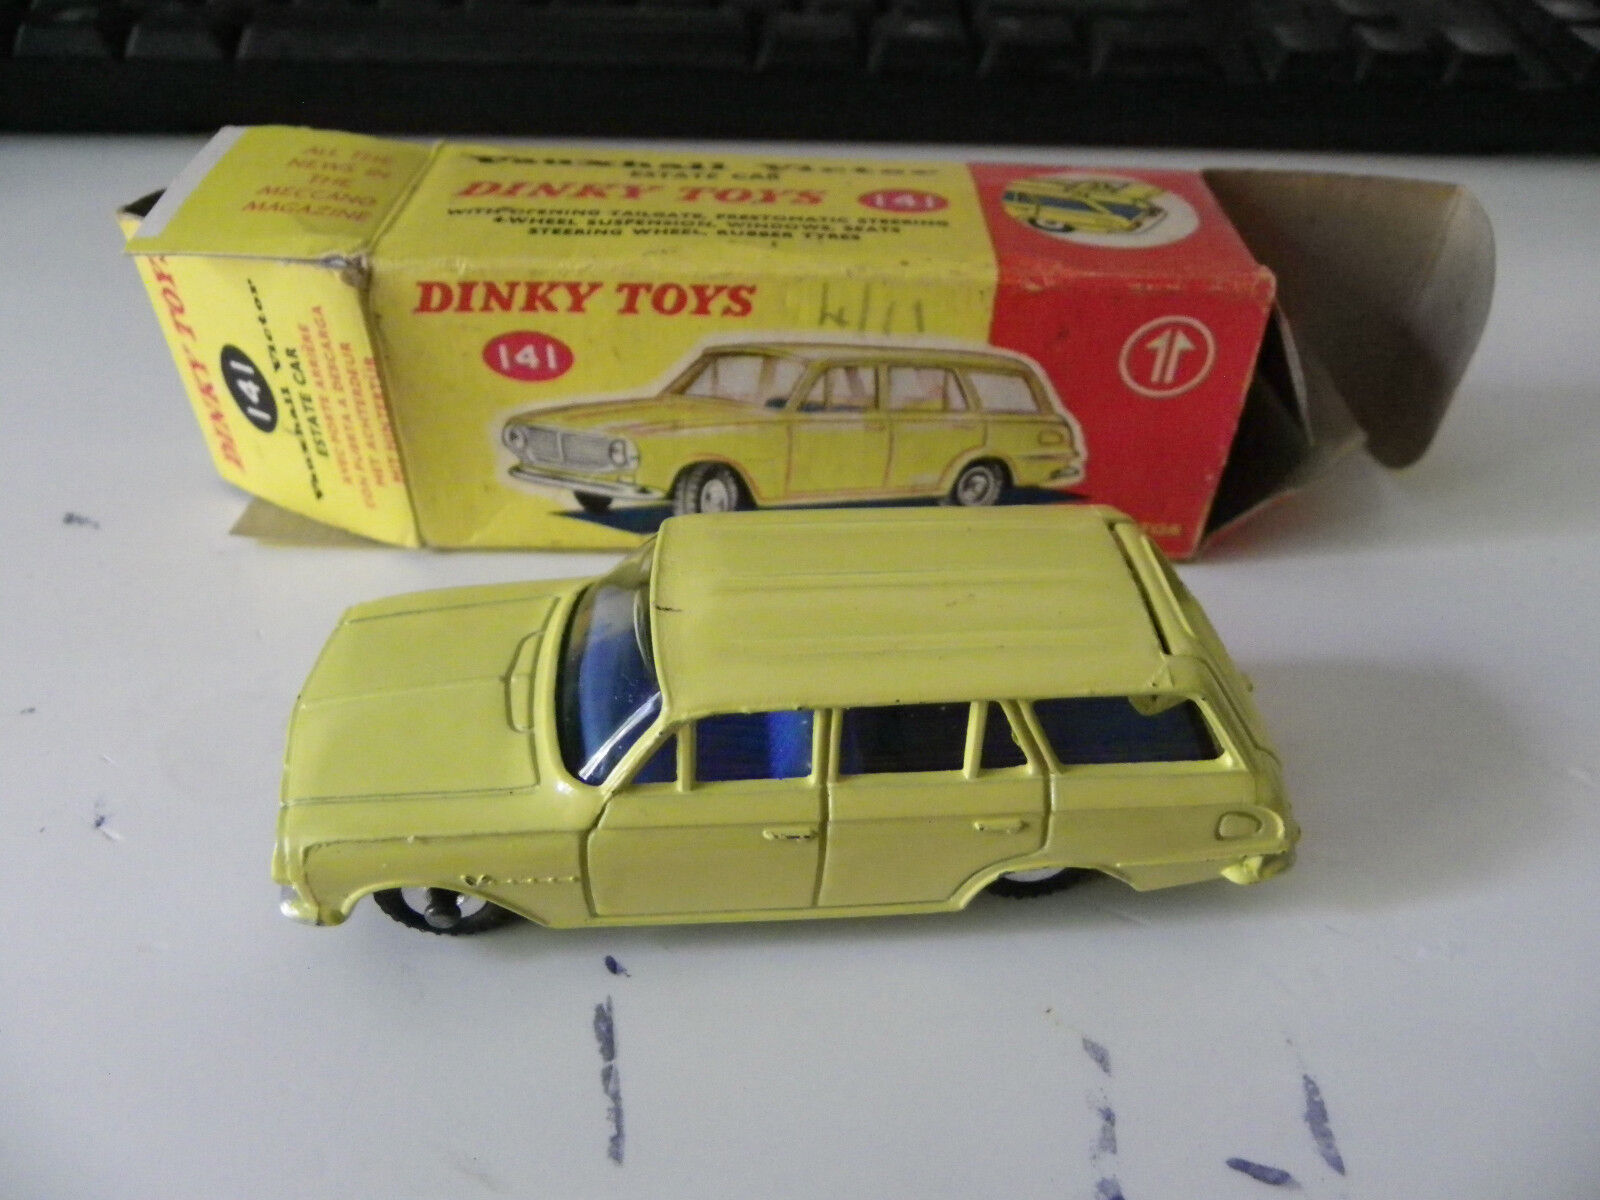 SUPERBE DINKY TOYS VAUXHALL VICTOR ESTATE réf 141 ORIGINE BOXED